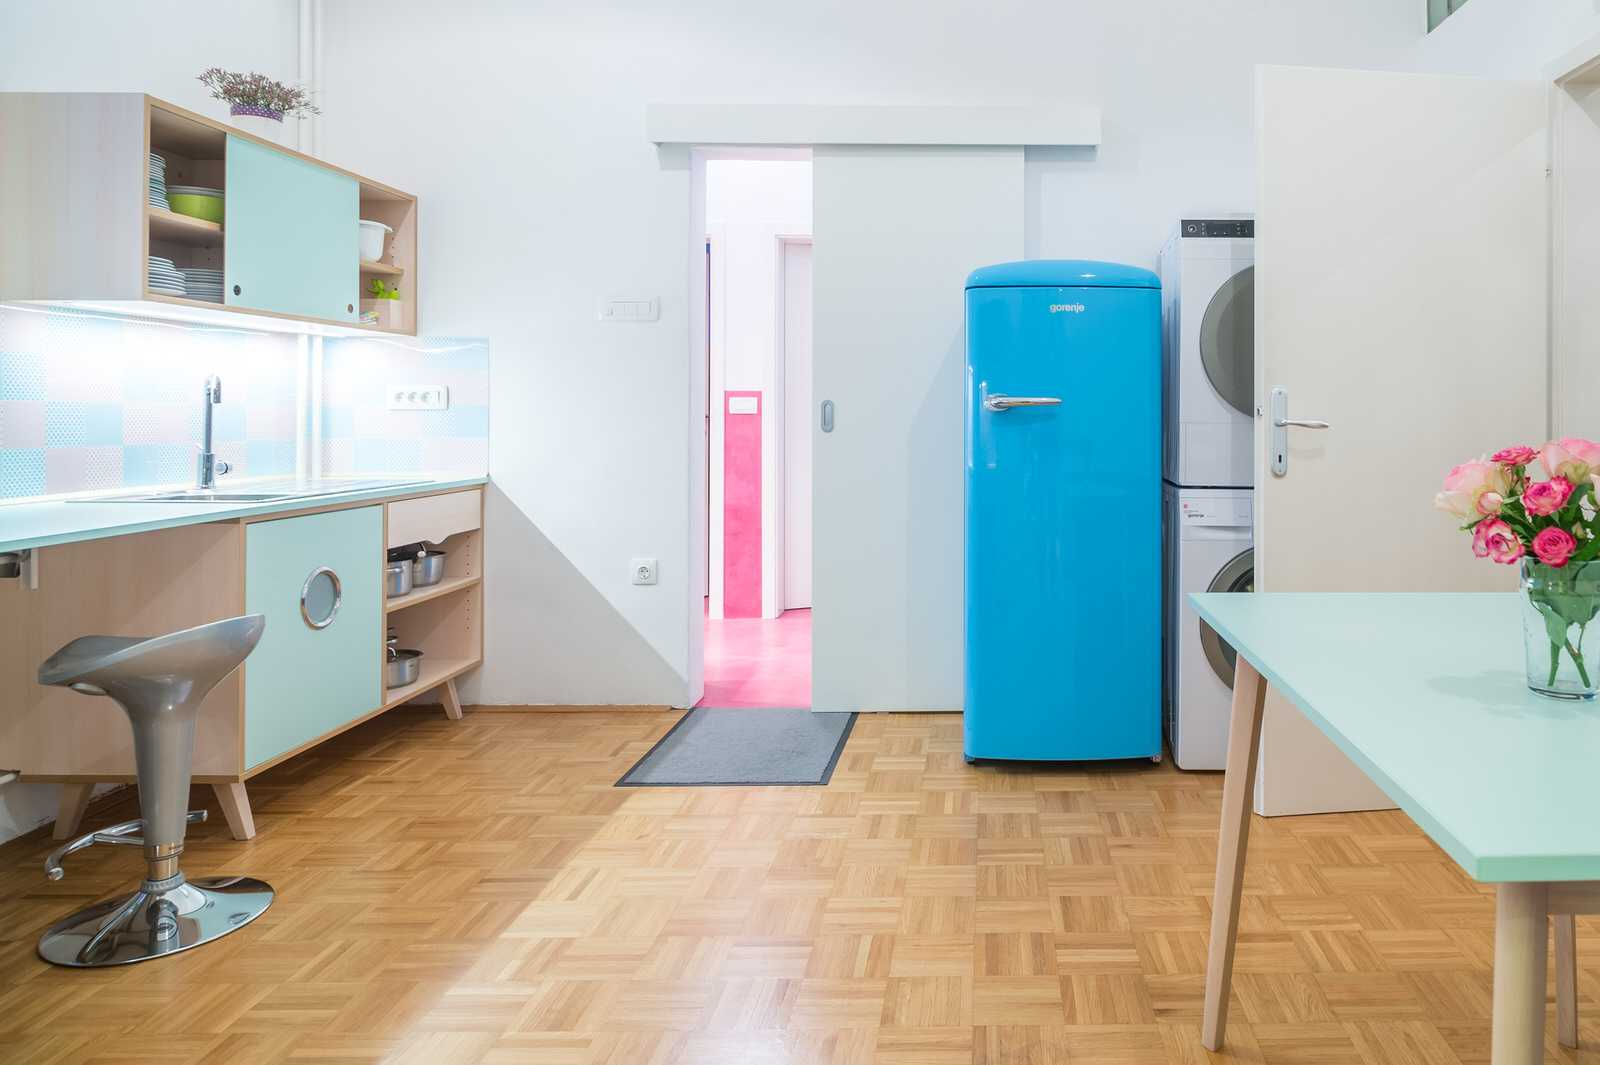 The kitchen features bright retro appliances.